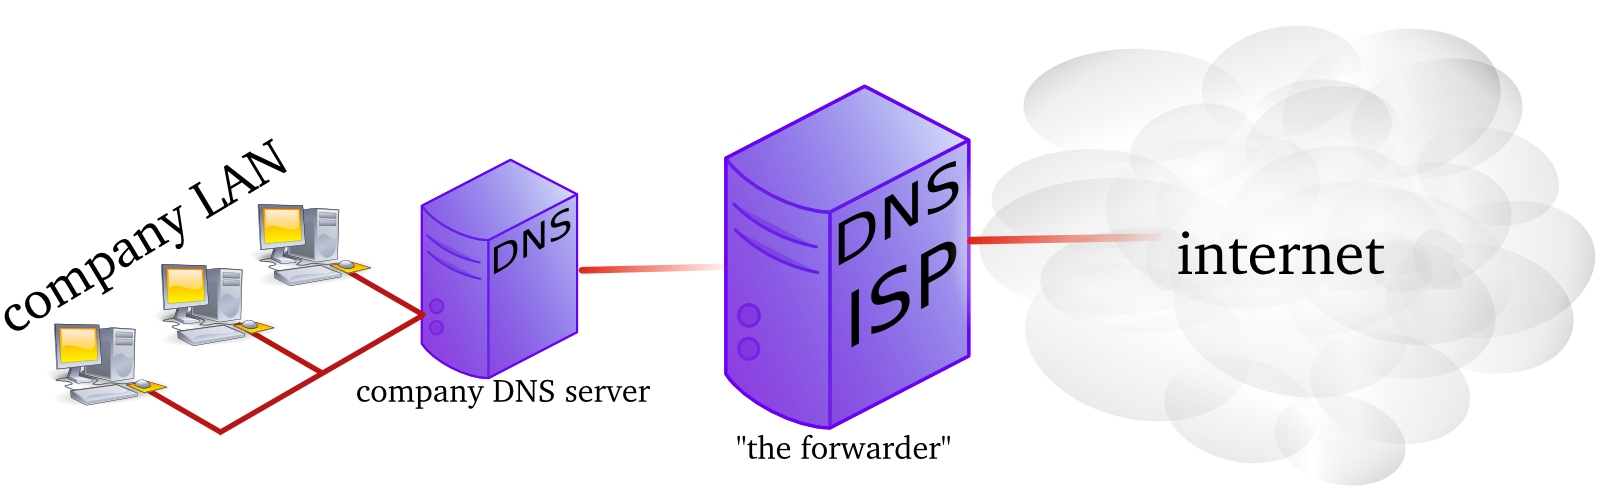 Chapter 4  introduction to DNS